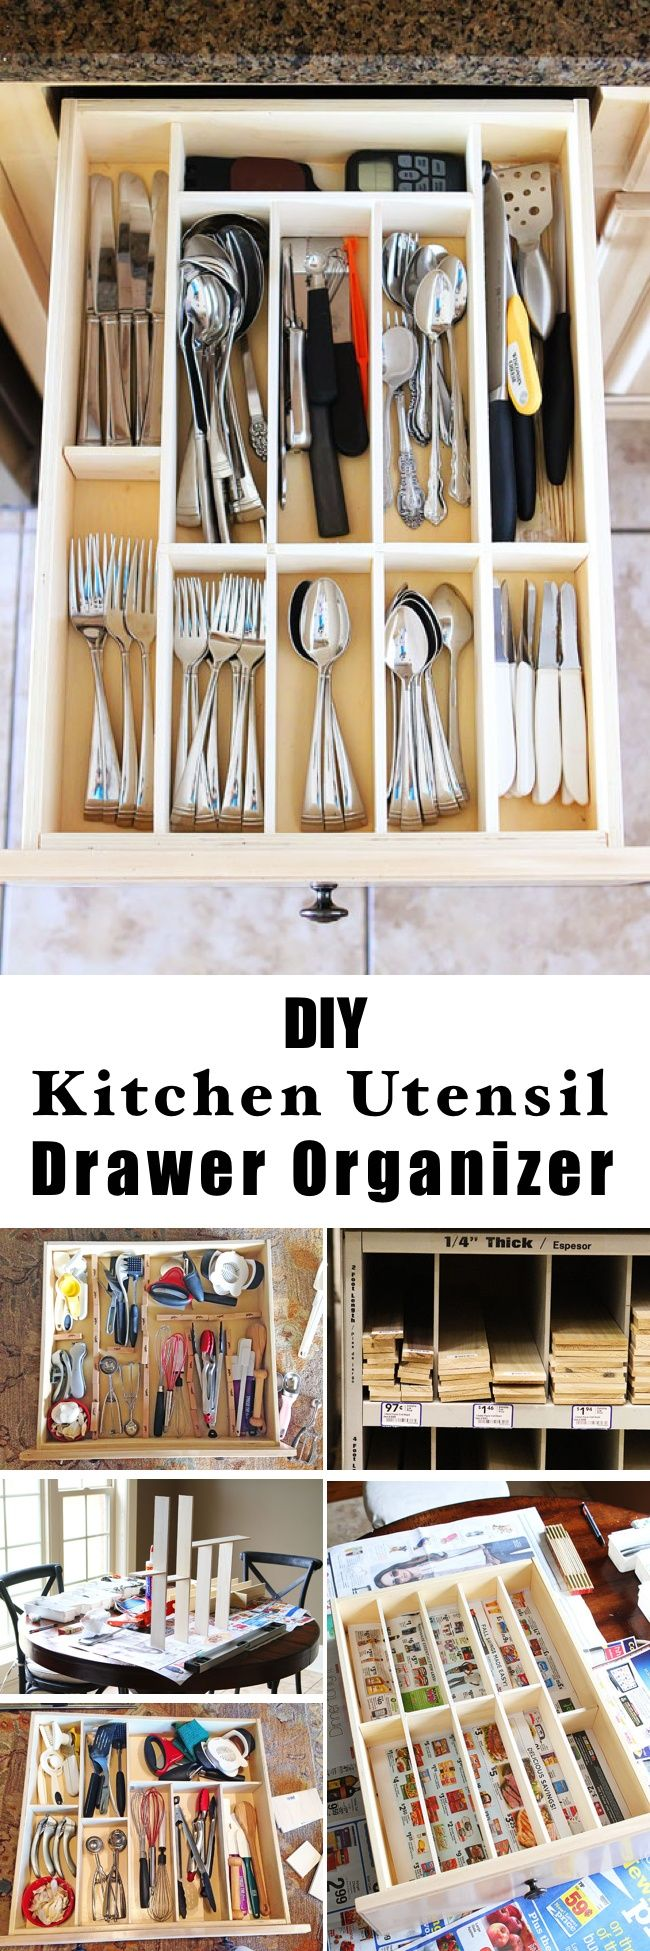 Best 25 diy kitchen accessories ideas on pinterest painting 15 innovative diy kitchen organization storage ideas solutioingenieria Gallery